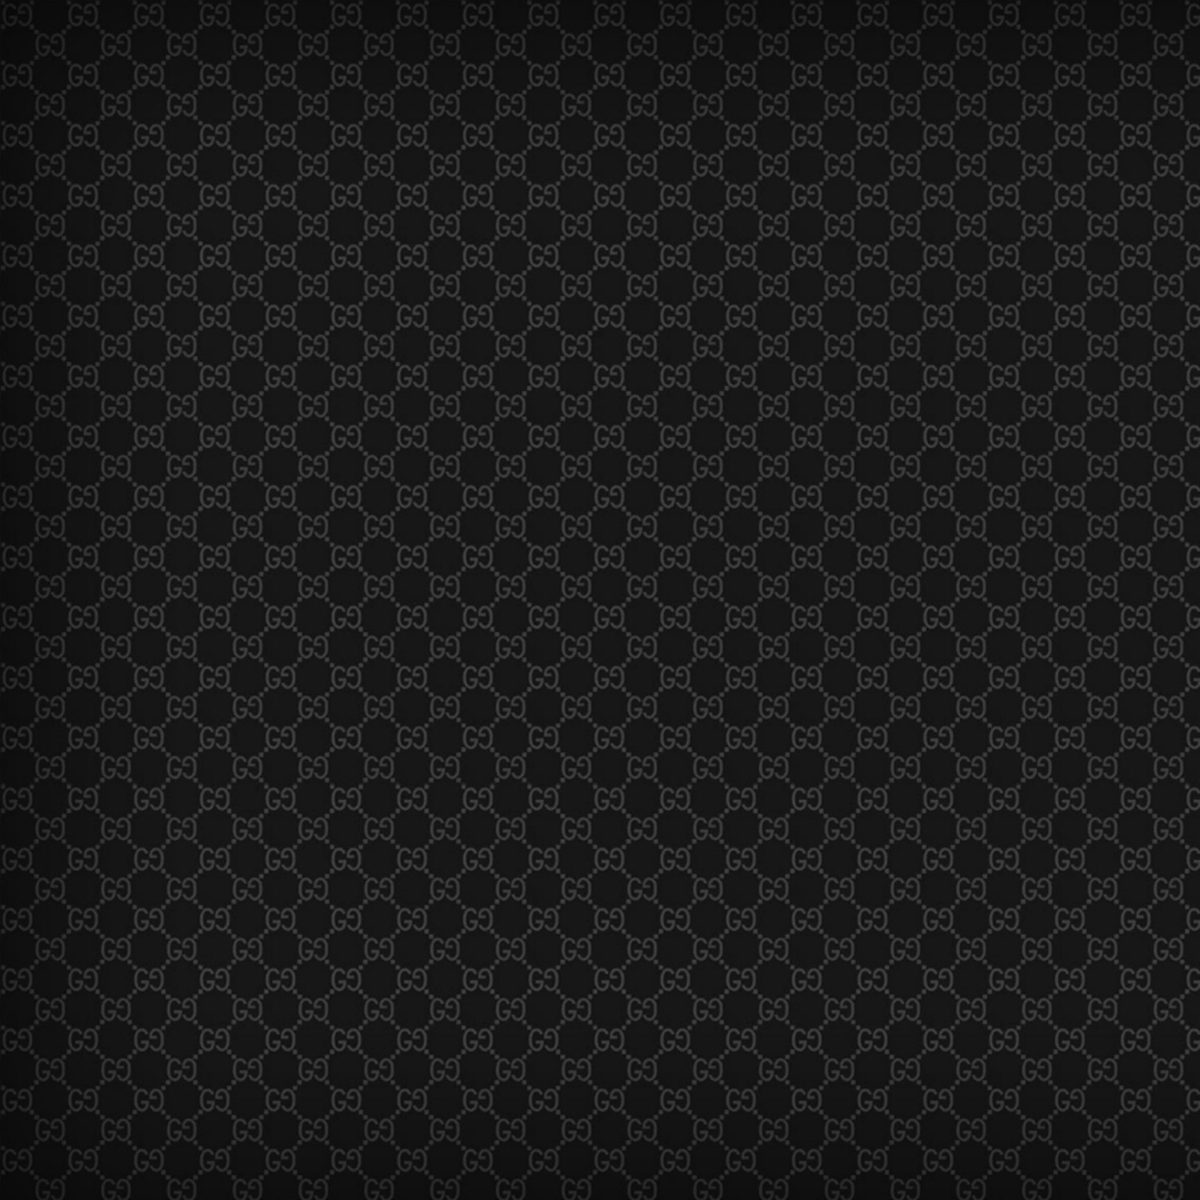 Black Goyard Design – Tap to see more goyard wallpapers! – @mobile9 …